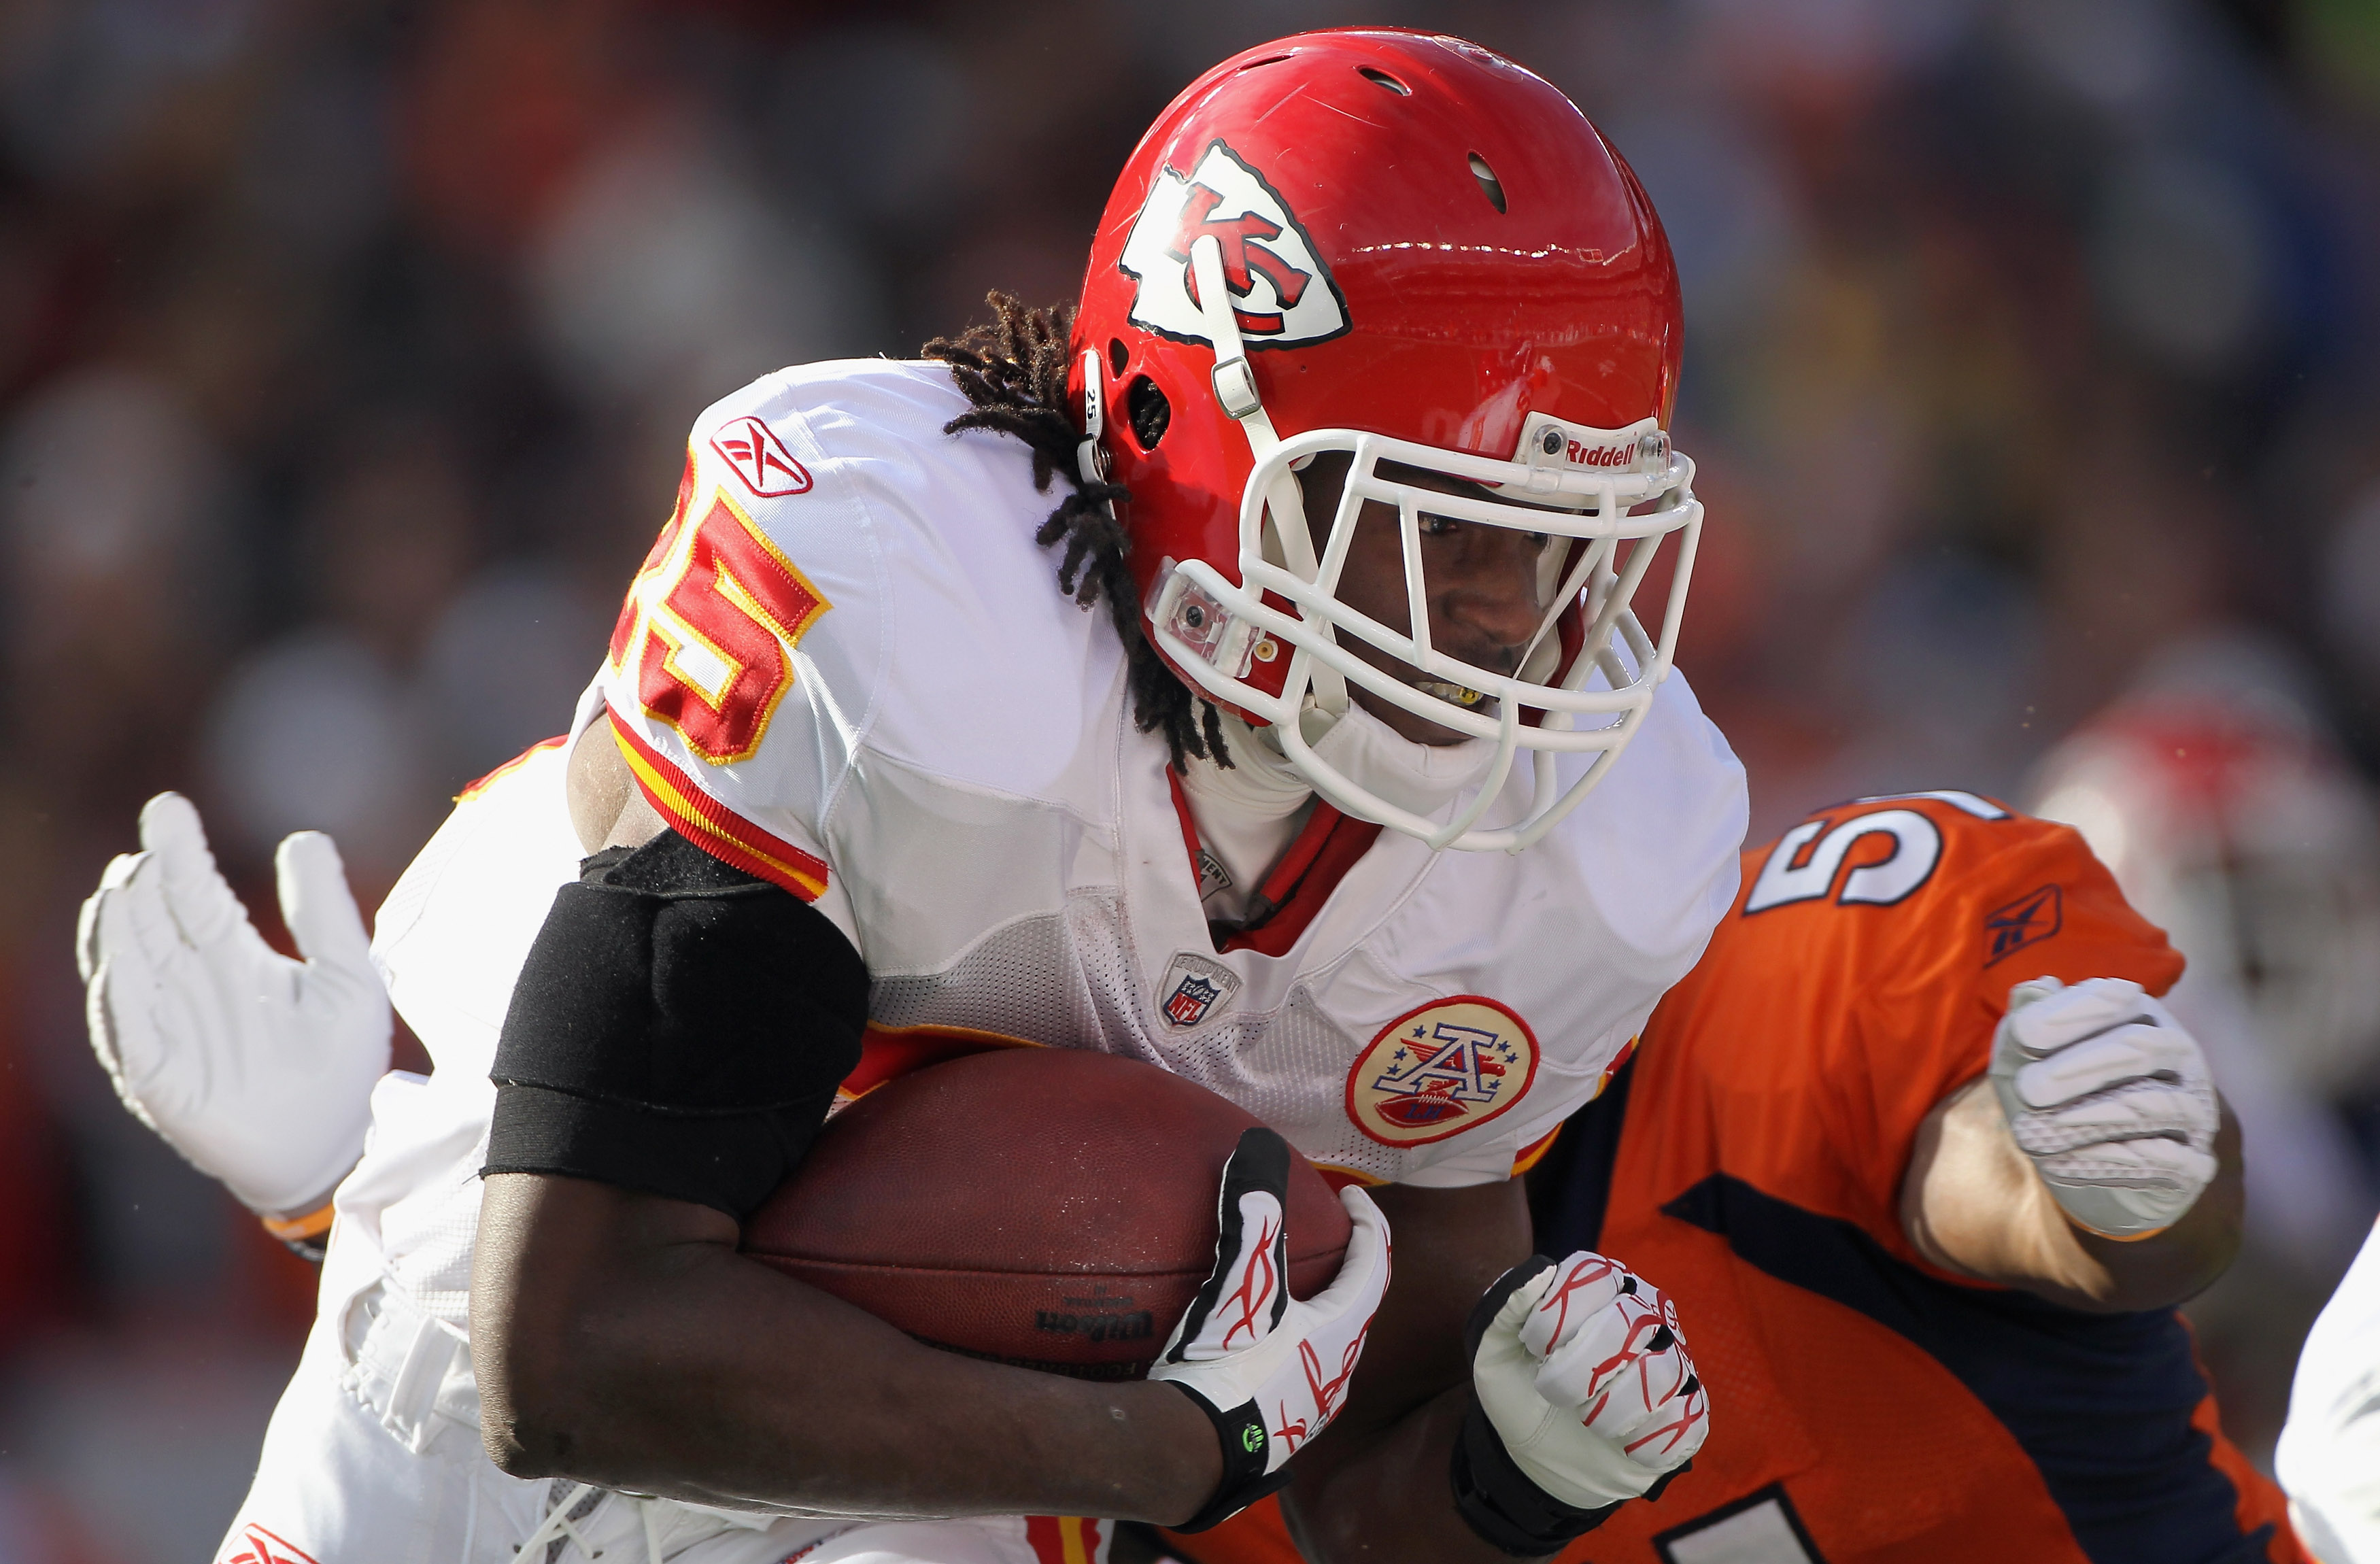 DENVER - NOVEMBER 14:  Running back Jamaal Charles #25 of the Kansas City Chiefs rushes the ball and is stopped by linebacker Joe Mays #51 of the Denver Bronco defense at INVESCO Field at Mile High on November 14, 2010 in Denver, Colorado.  (Photo by Doug